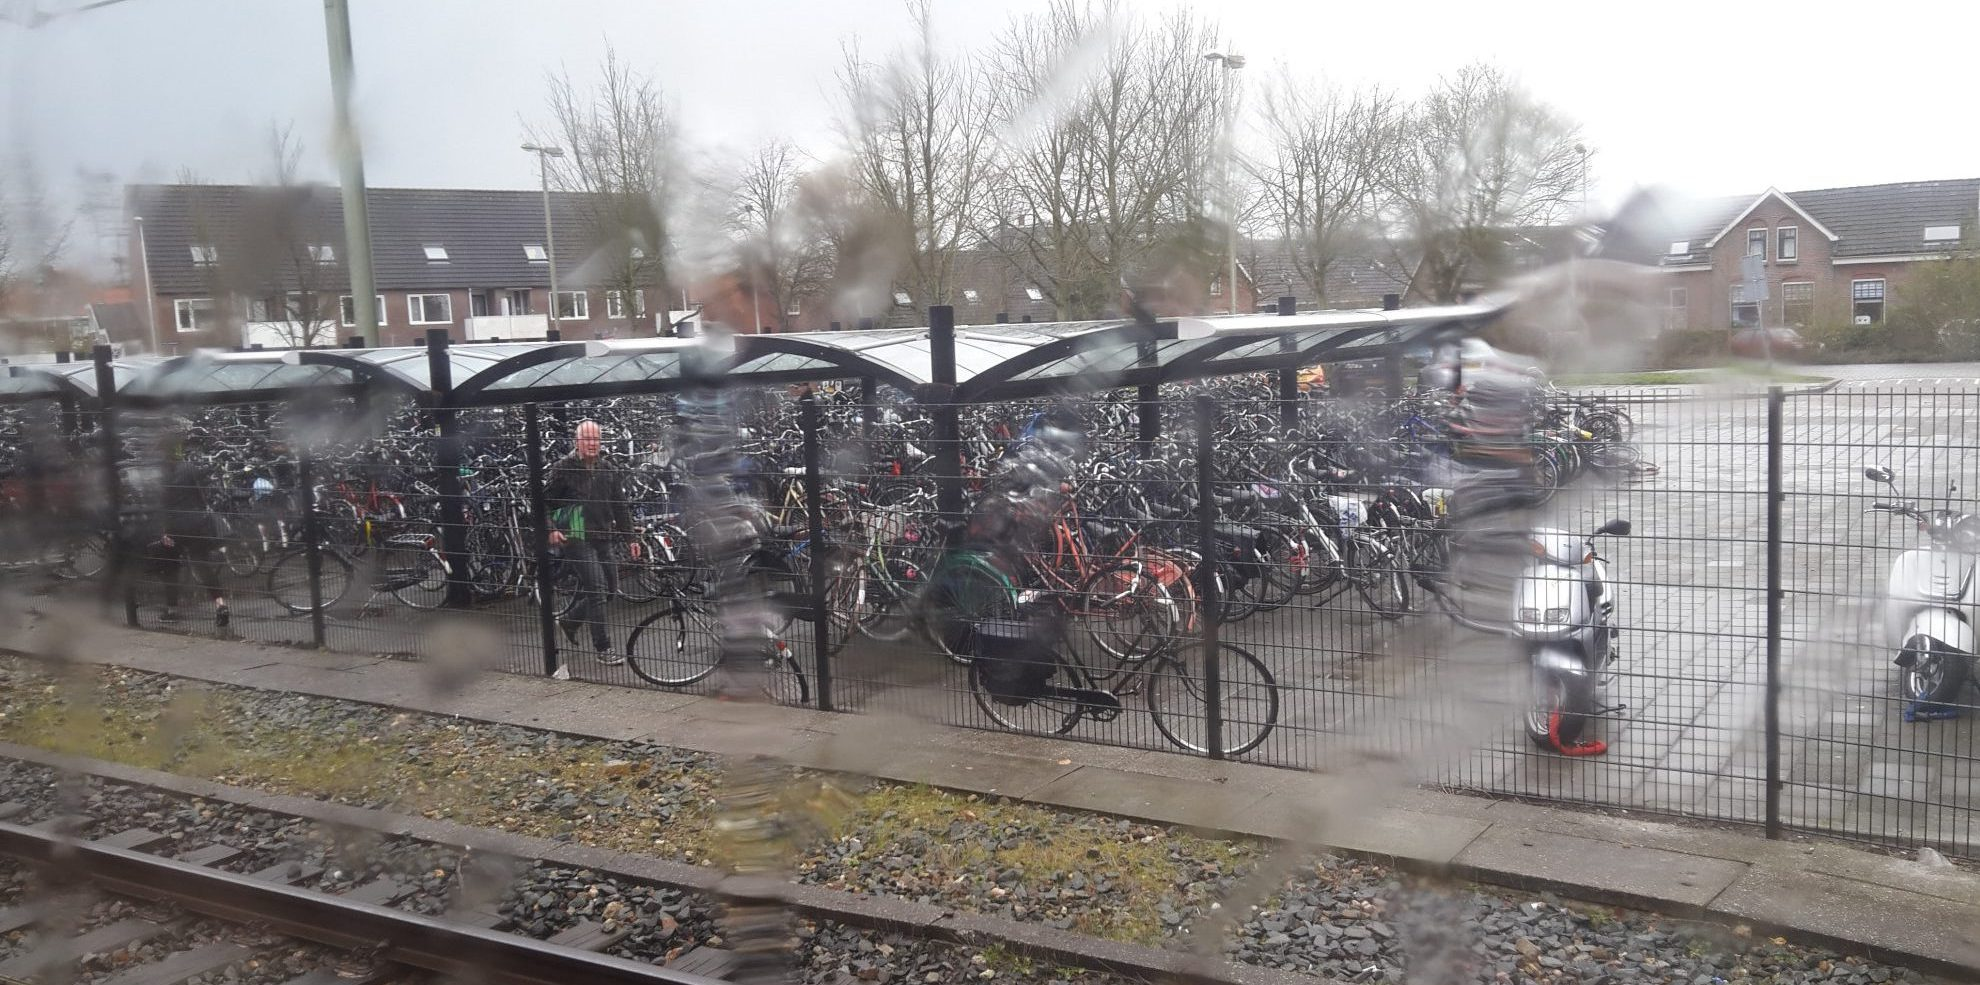 Bicycle parking at one of the stations along the way on my commute. Even on a rainy day, people bicycle.